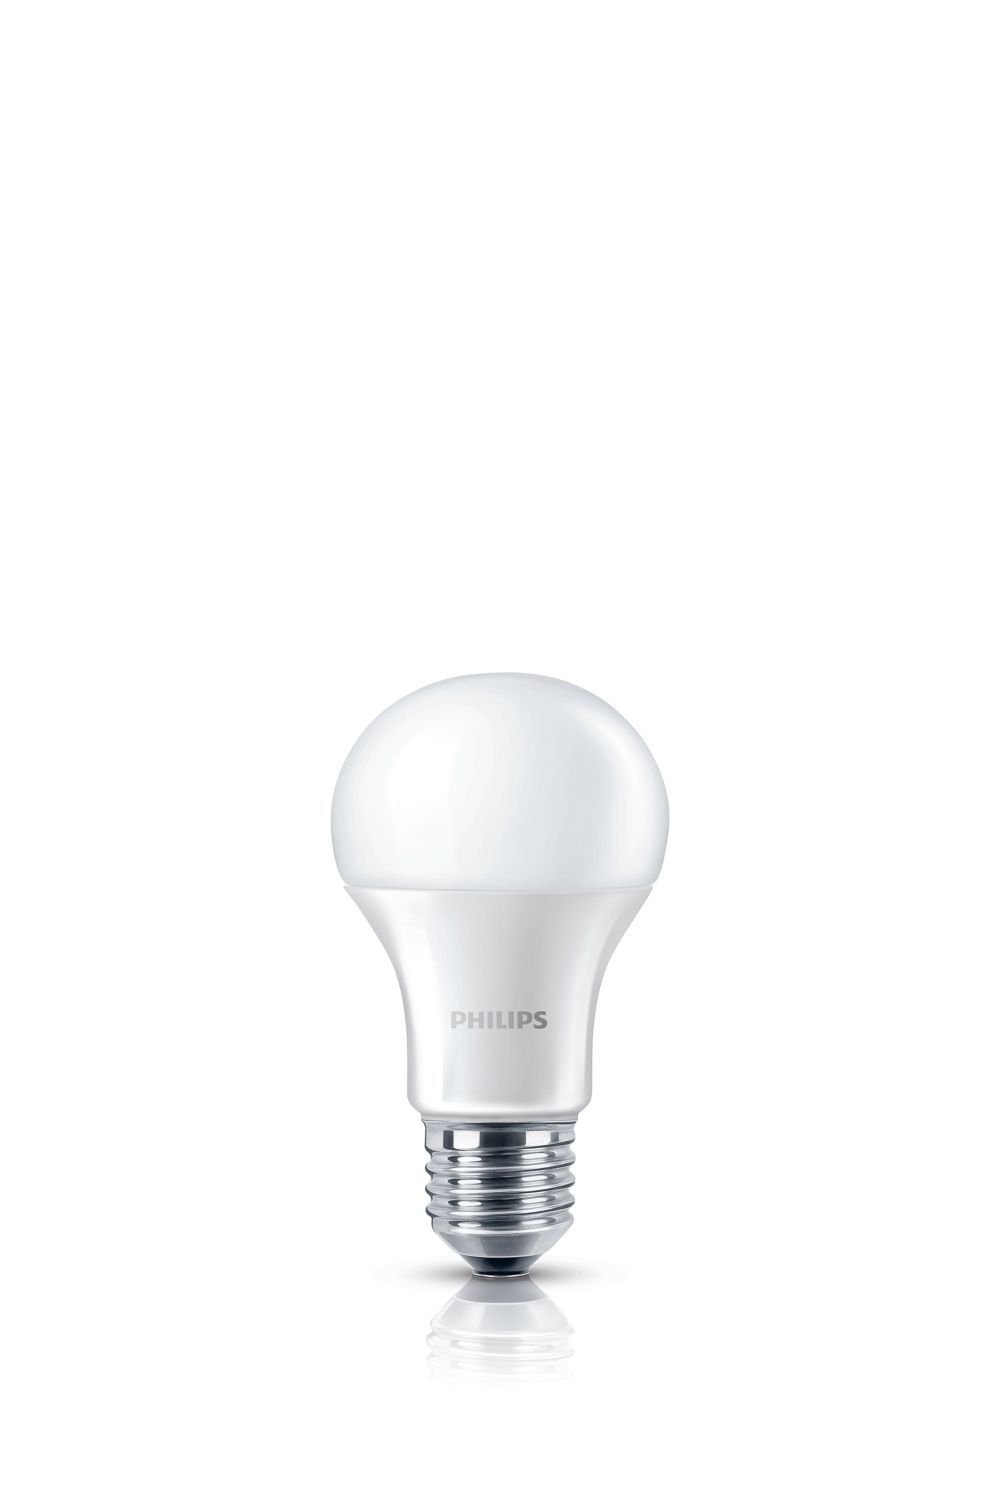 - Philips Lamp